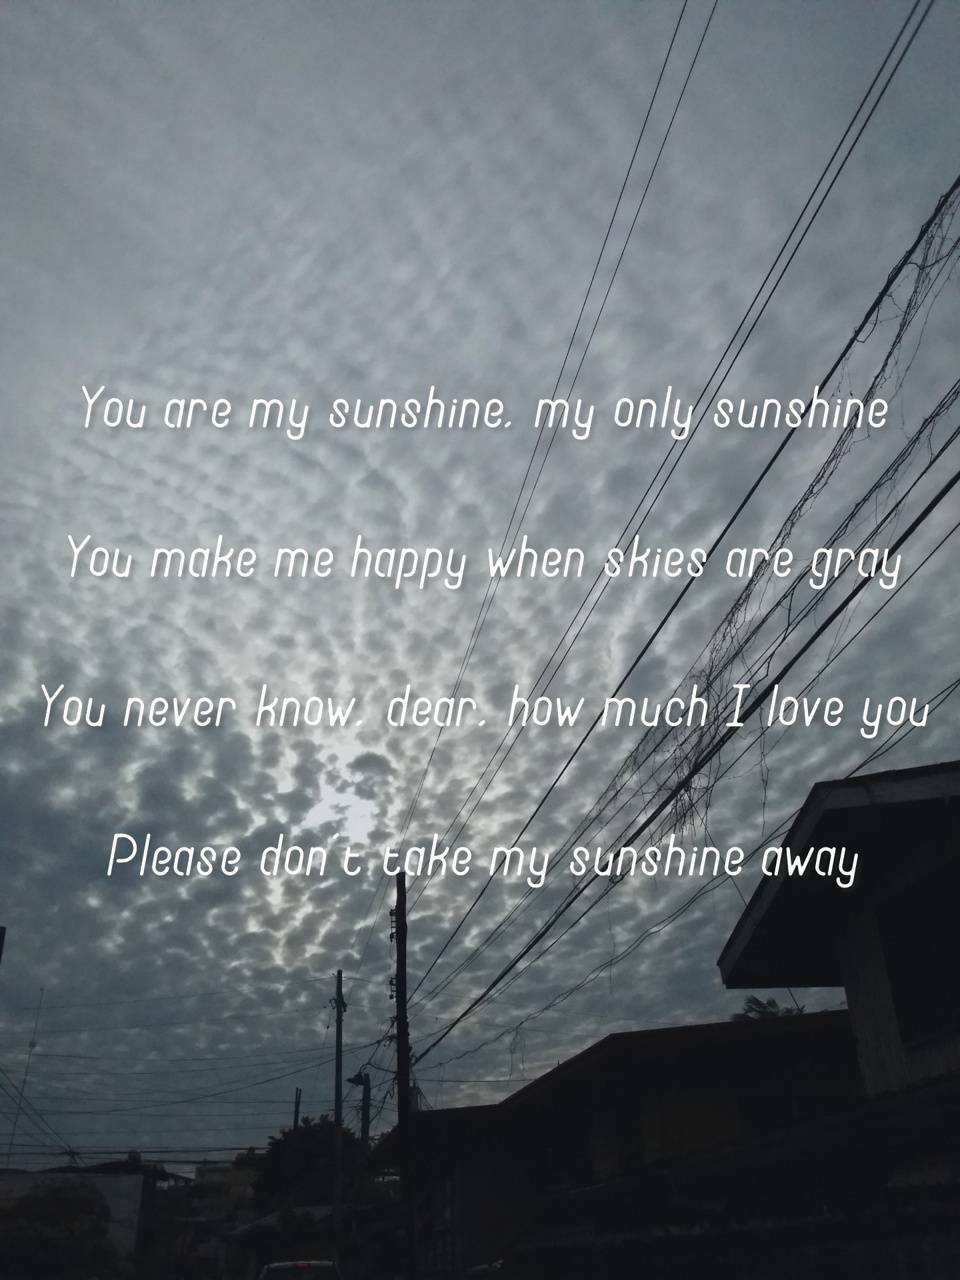 You Are My Sunshine Wallpaper By Ashdelossantos 16 Free On Zedge